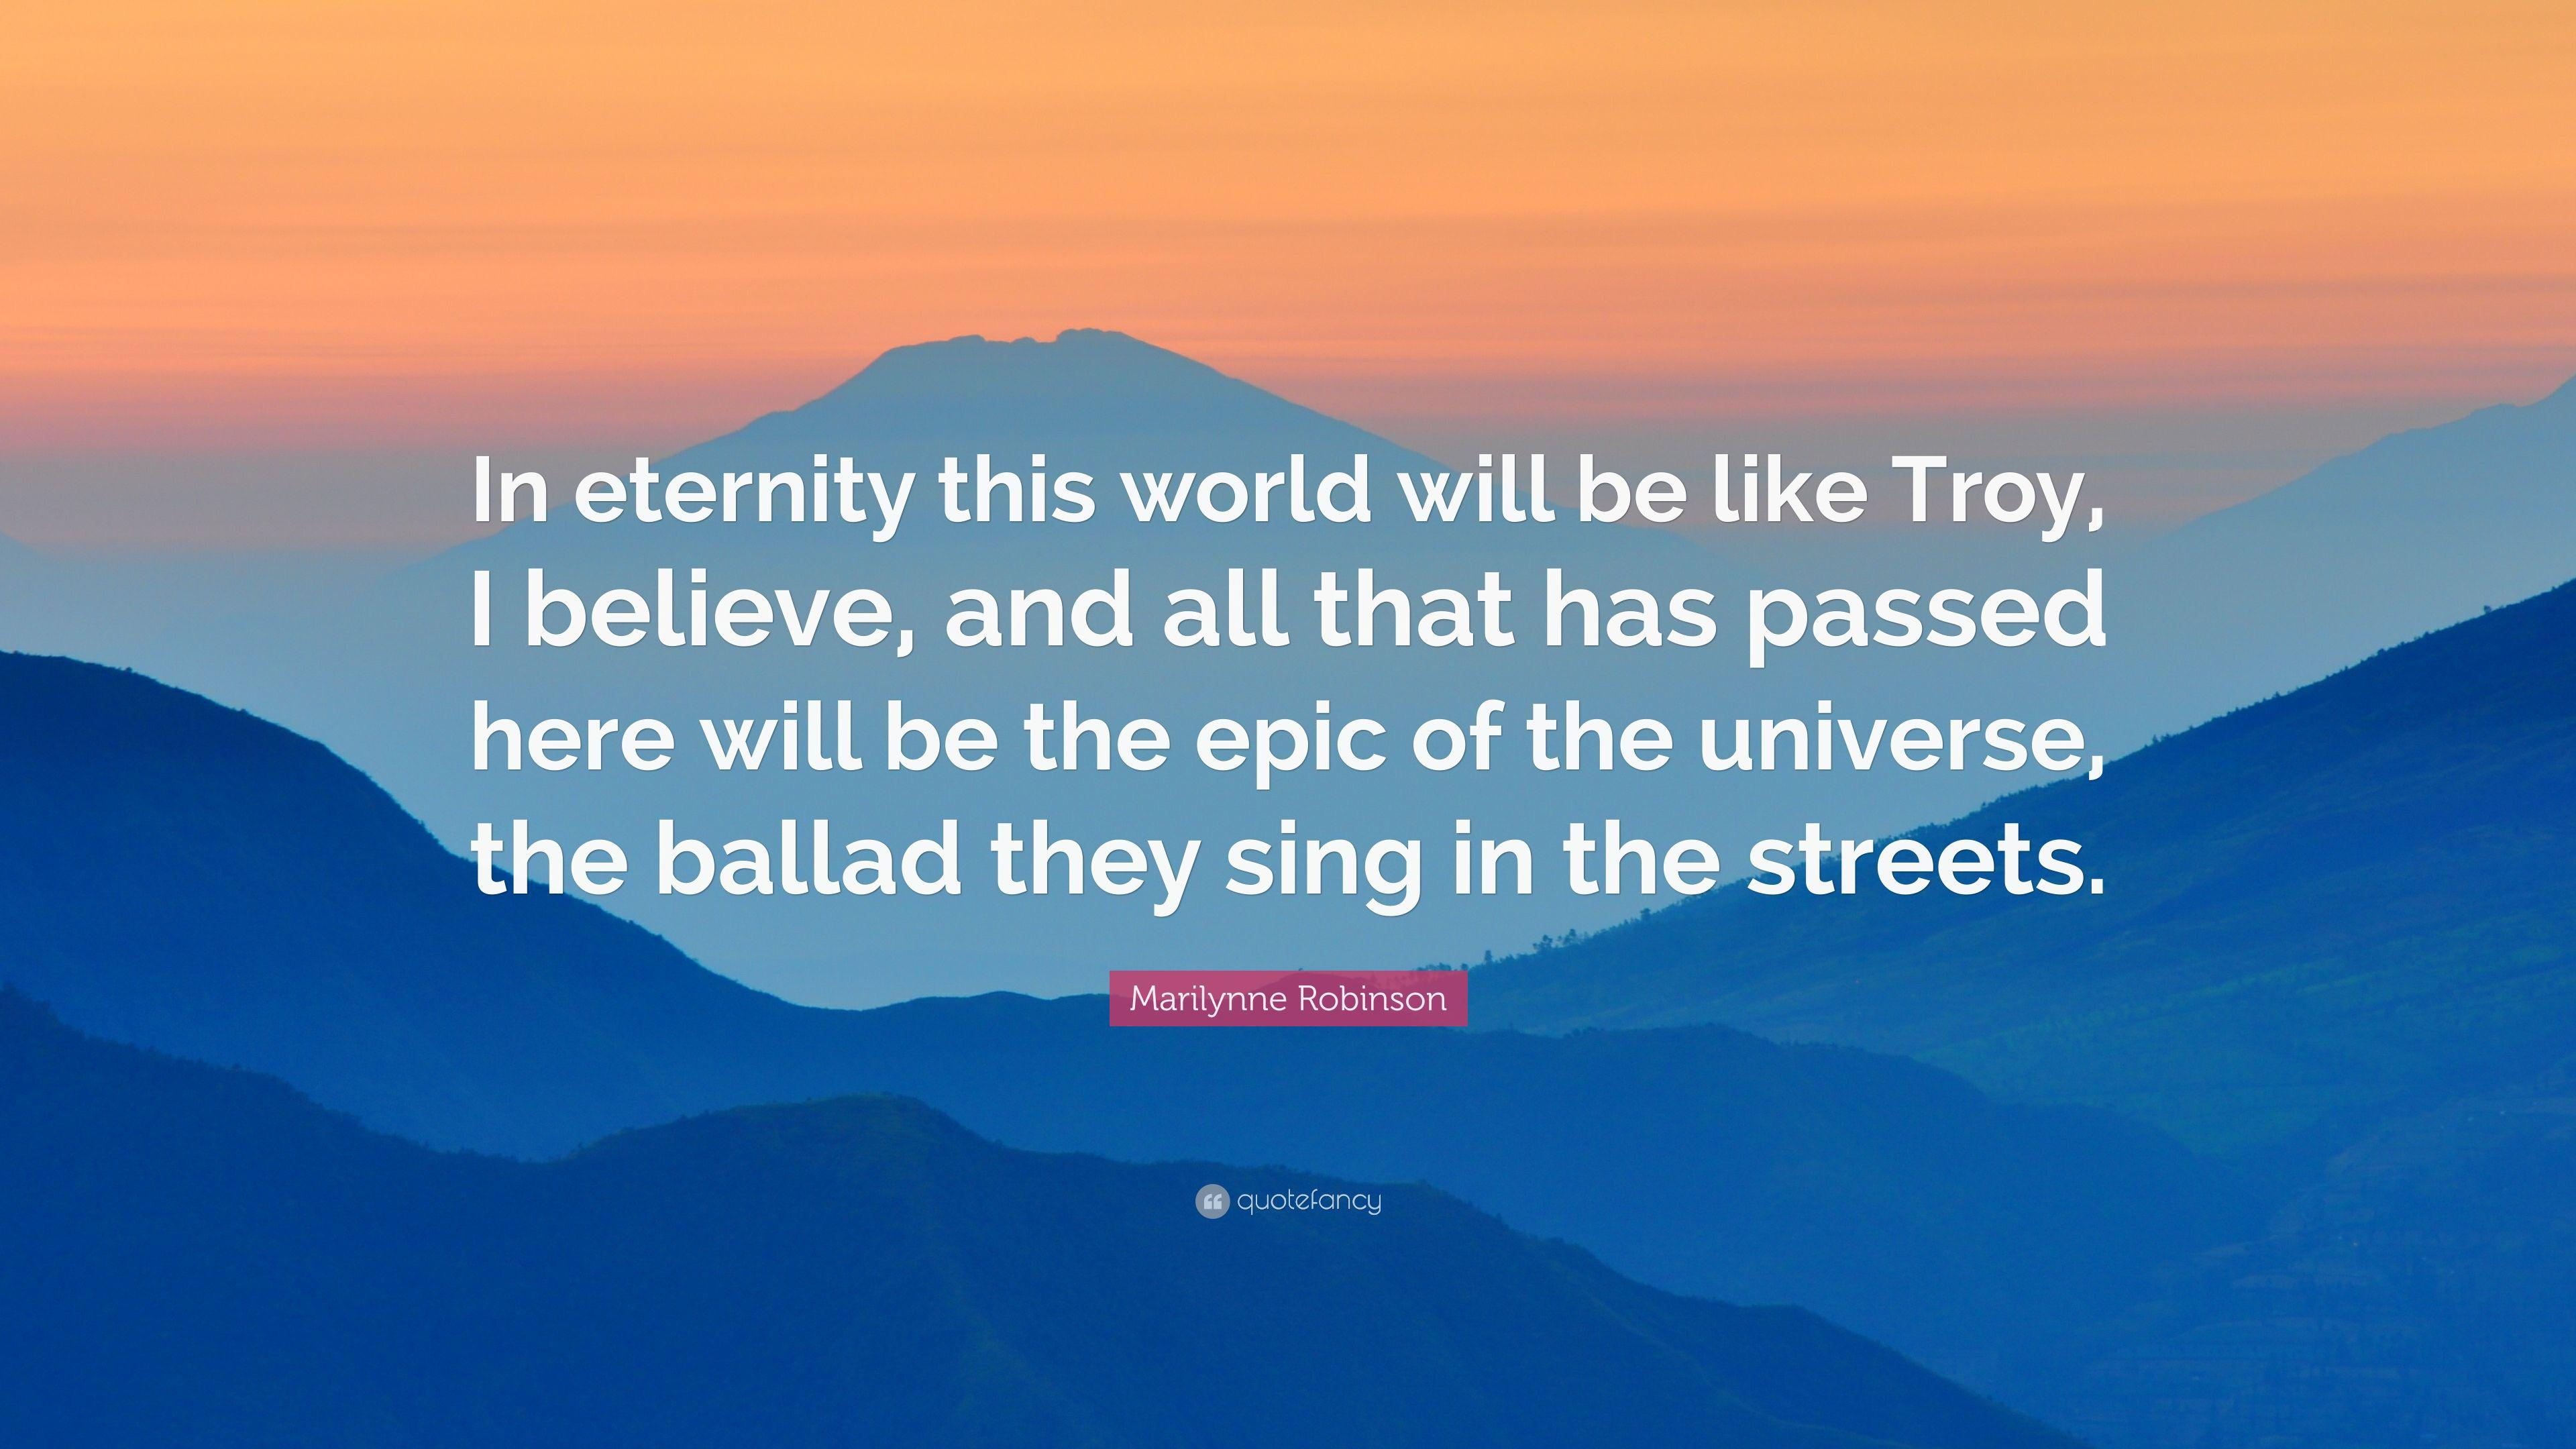 """""""In eternity this world will be Troy, I believe, and all that has passed here will be the epic of the universe, the ballad they sing in the streets. Because I don't imagine any reality putting this one in the shade entirely, and I think piety forbids me to try."""" -Marilynne Robinson [3840×2160]"""